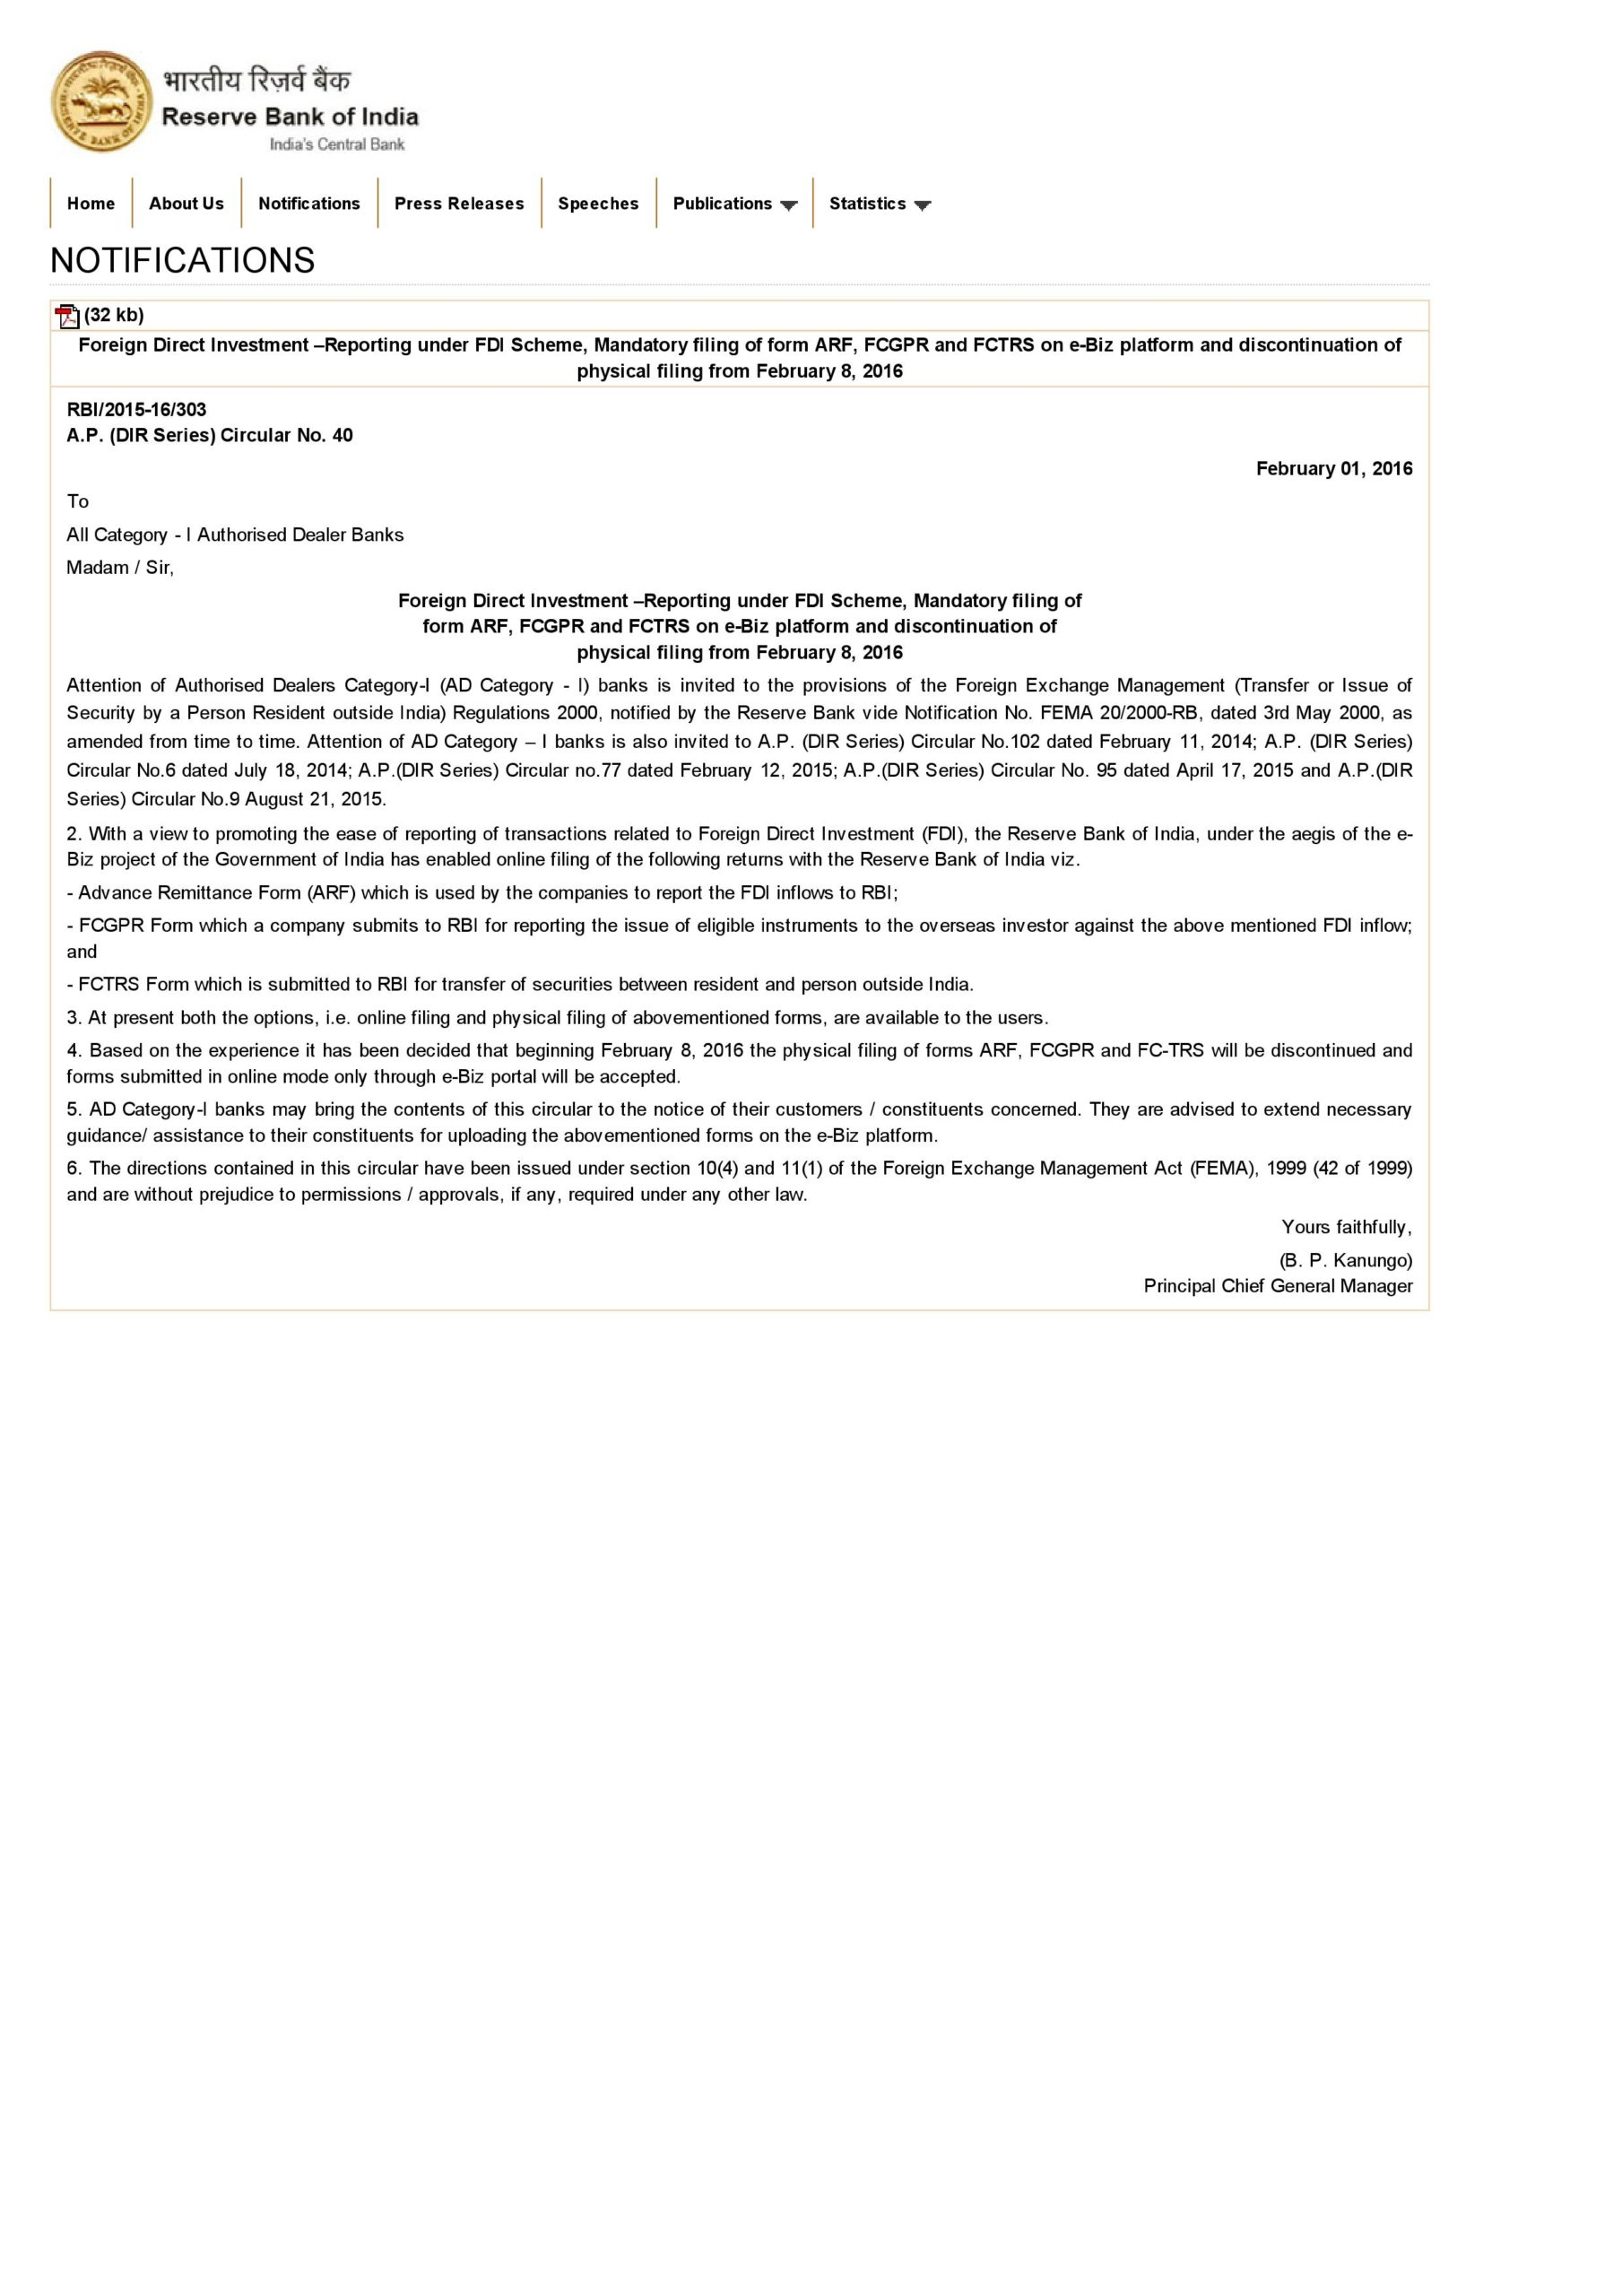 Rbi And Fema Compliances In Respect Of Transfer And Issue Of Shares